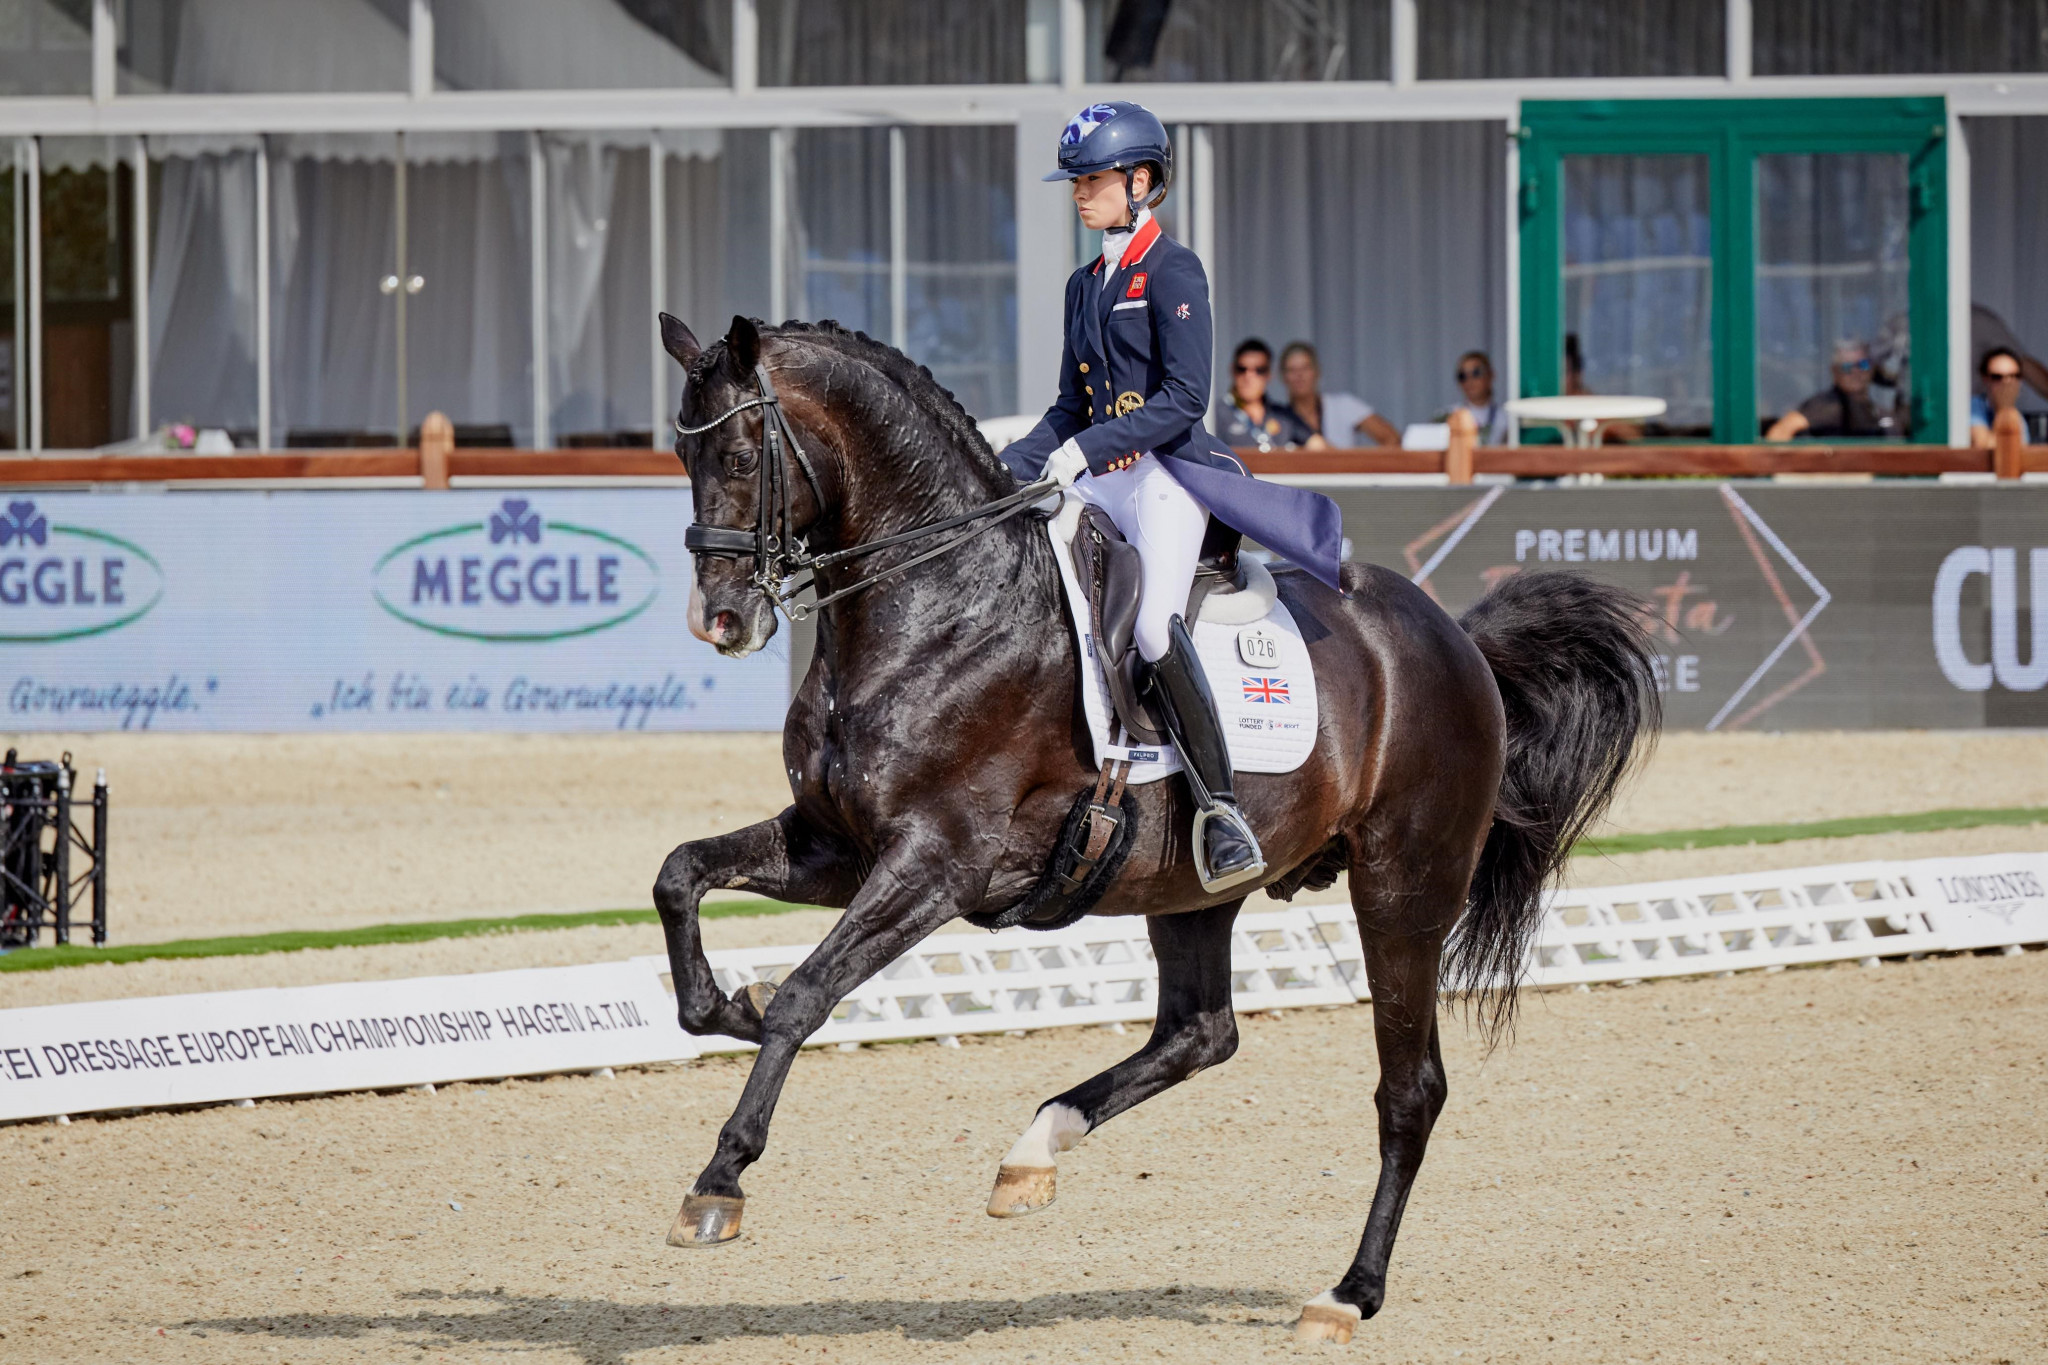 Britain lead team competition after opening day of FEI Dressage European Championships